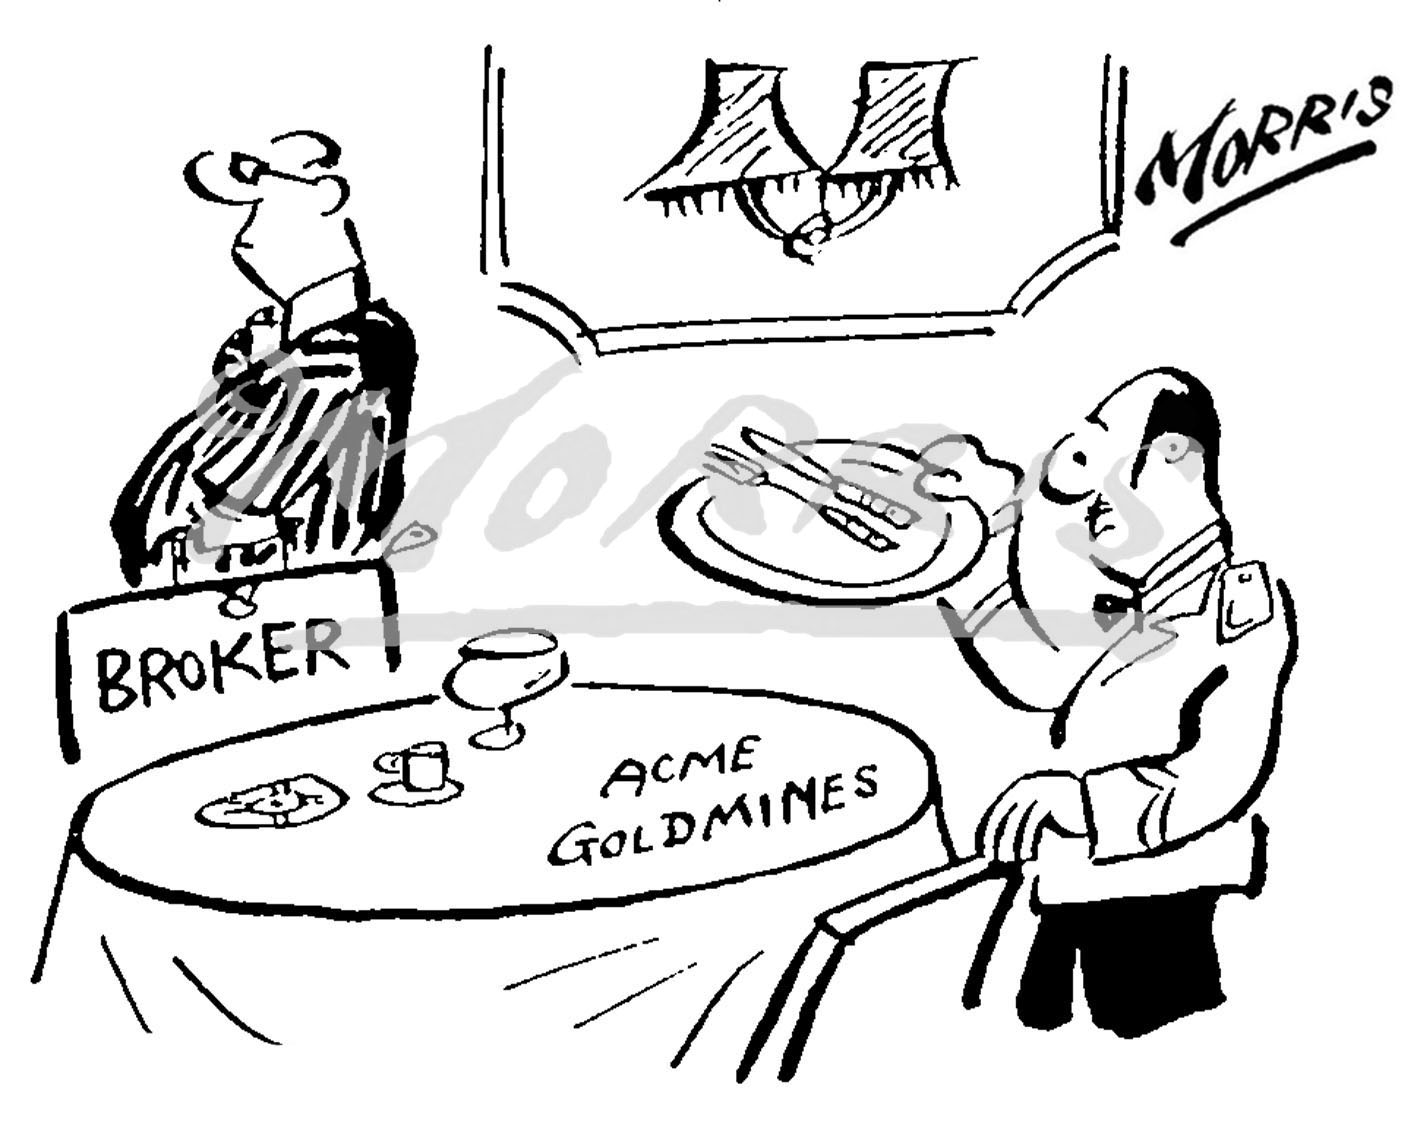 Broker stock market cartoon Ref: 0406bw